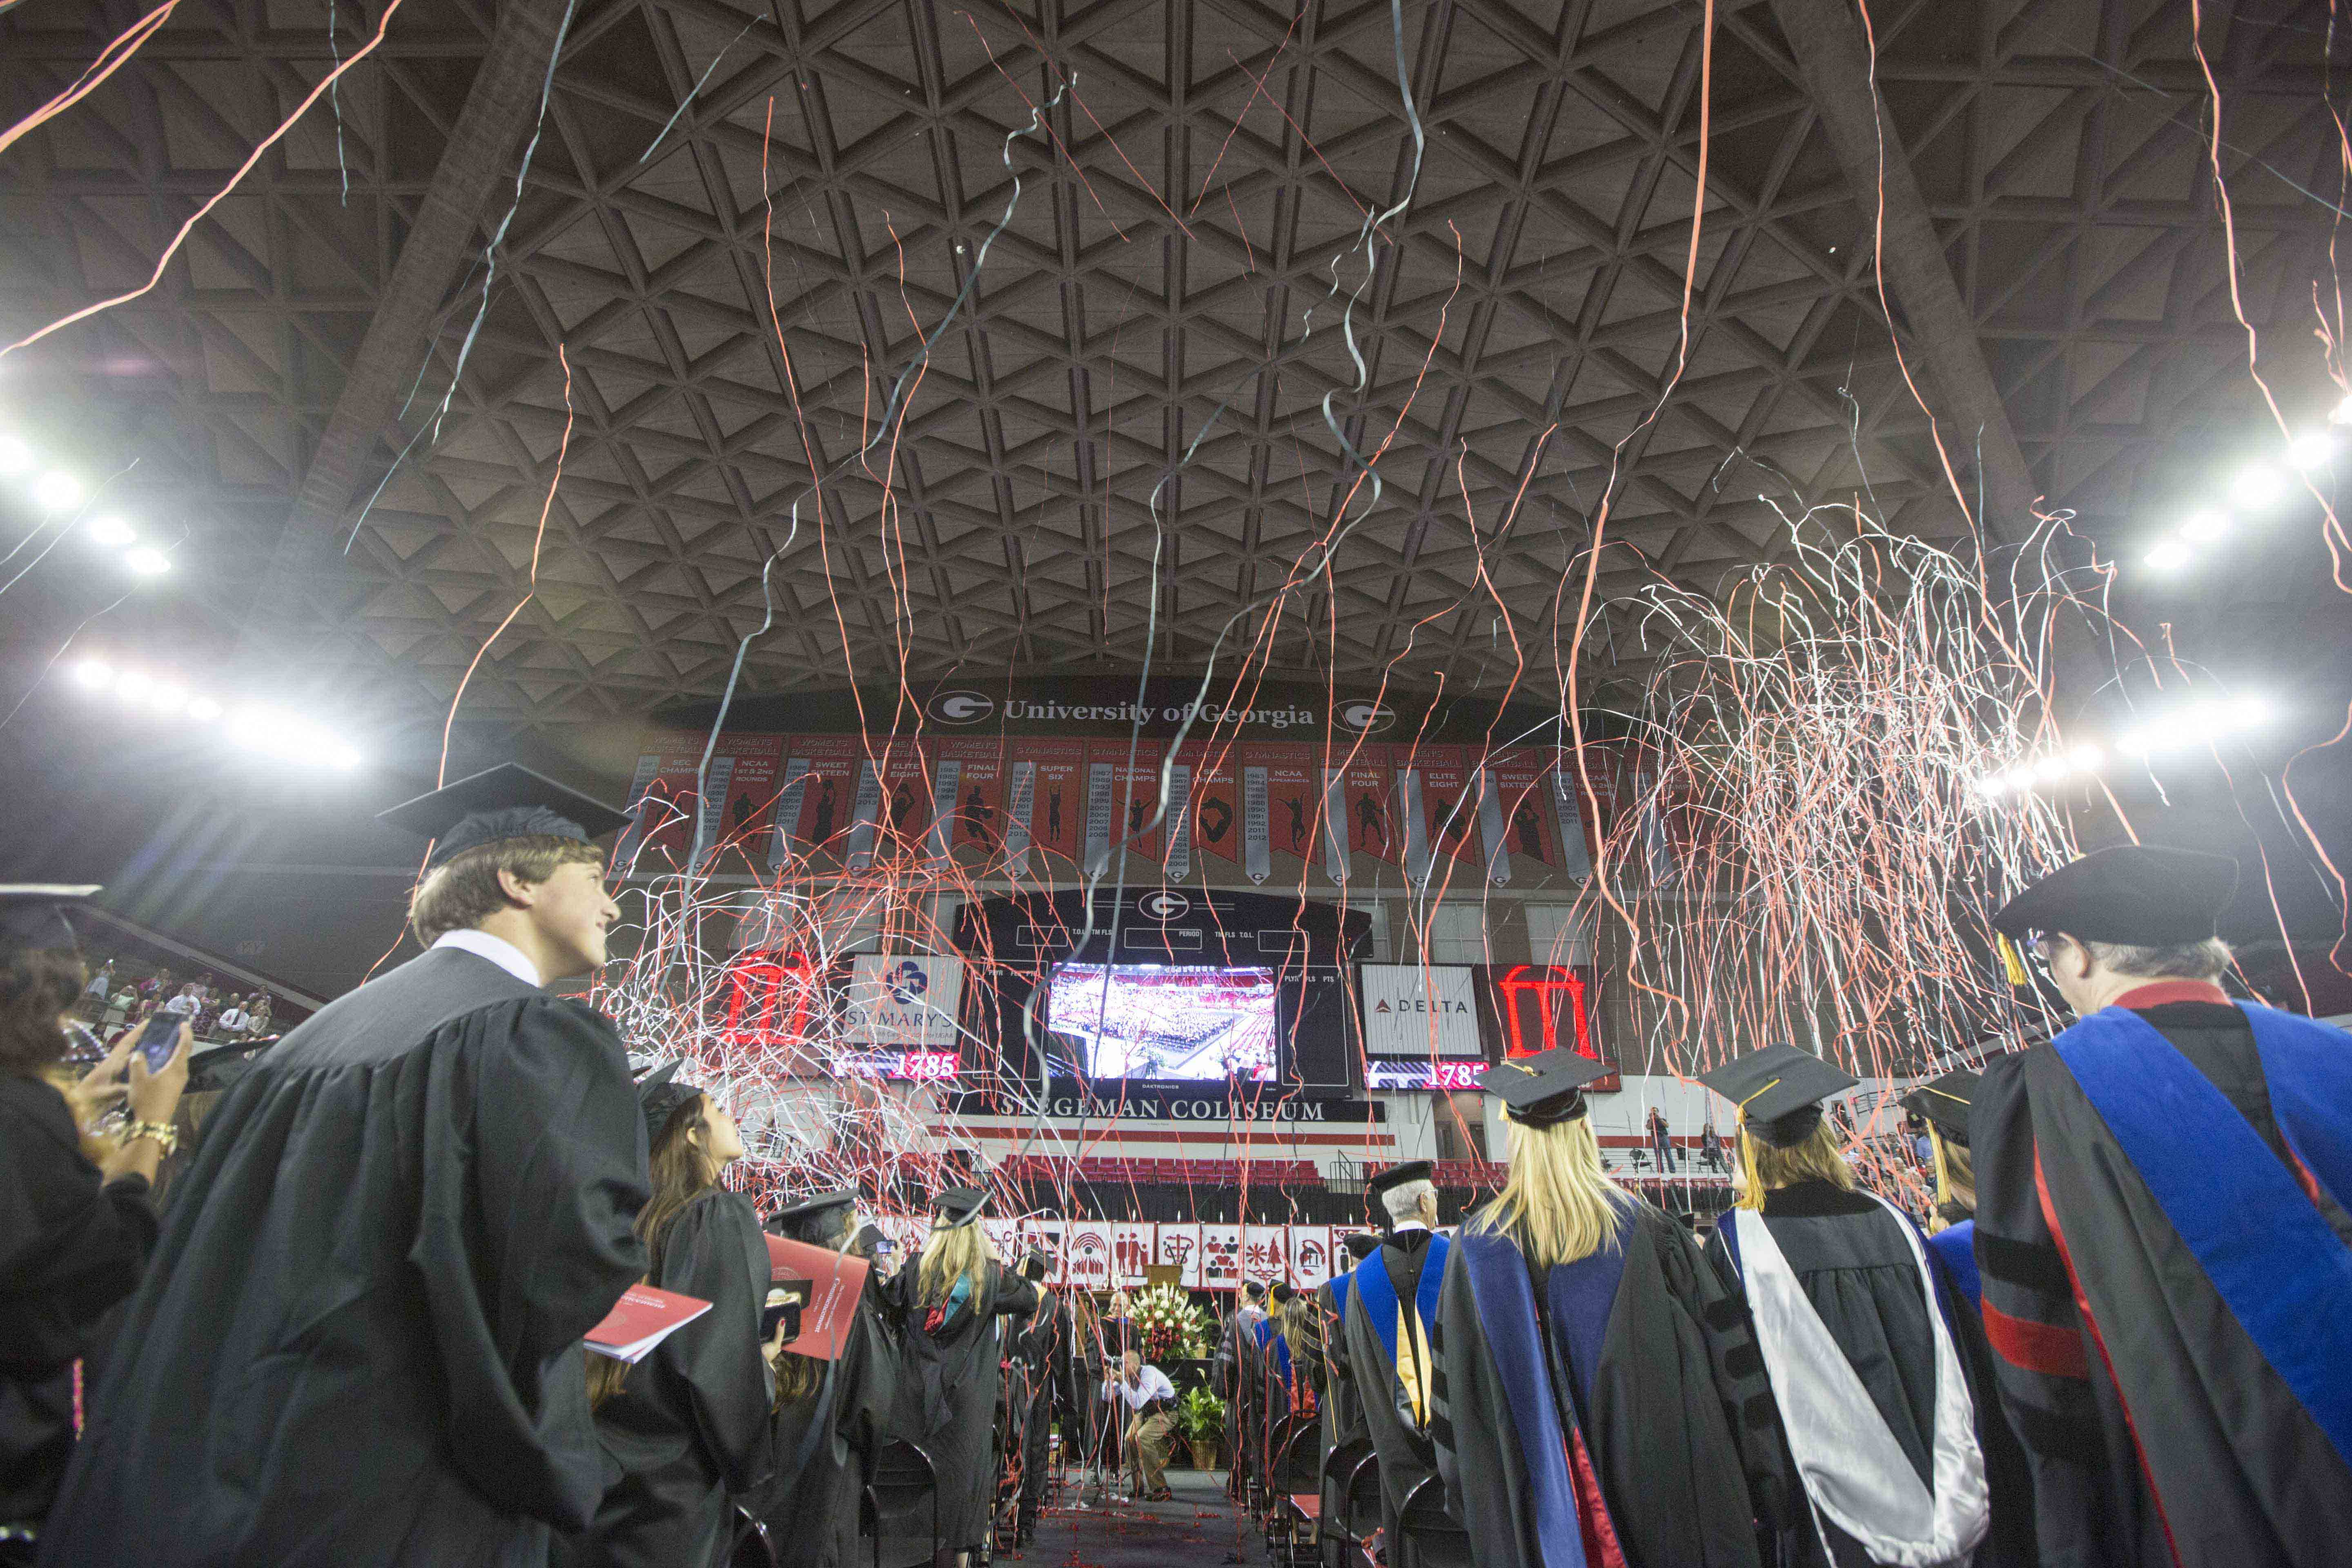 More than 2,800 students will join UGA's Class of 2017 this Friday at undergraduate and graduate Commencement ceremonies.